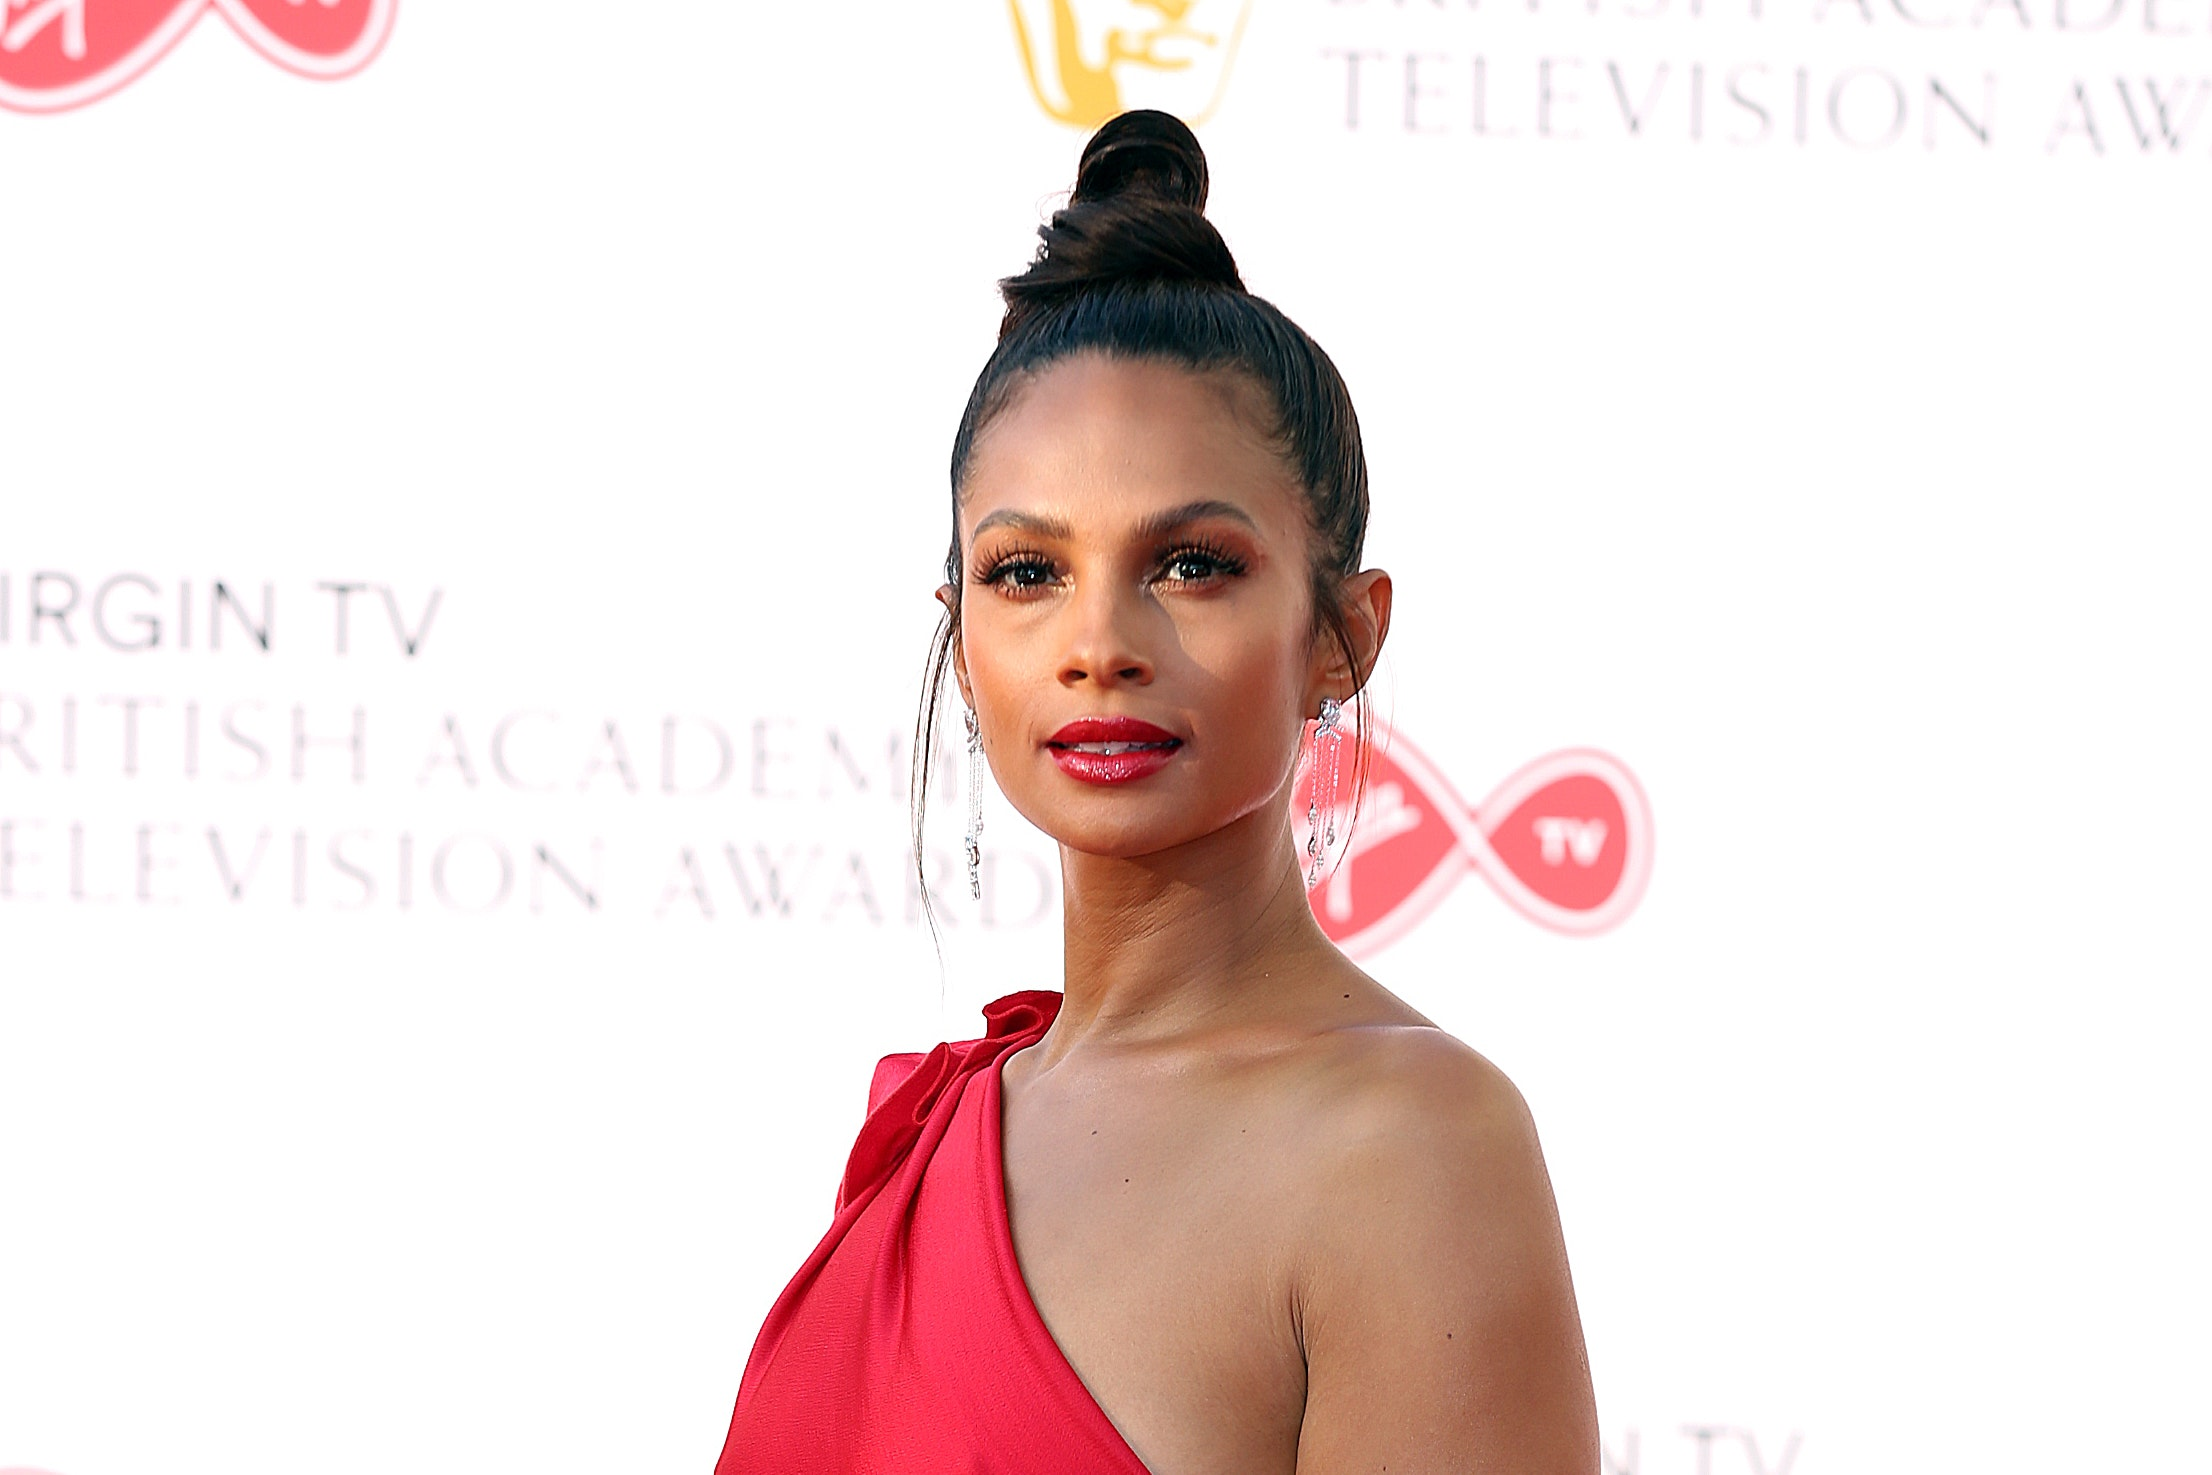 Alesha Dixon said she did not have faith in her ability